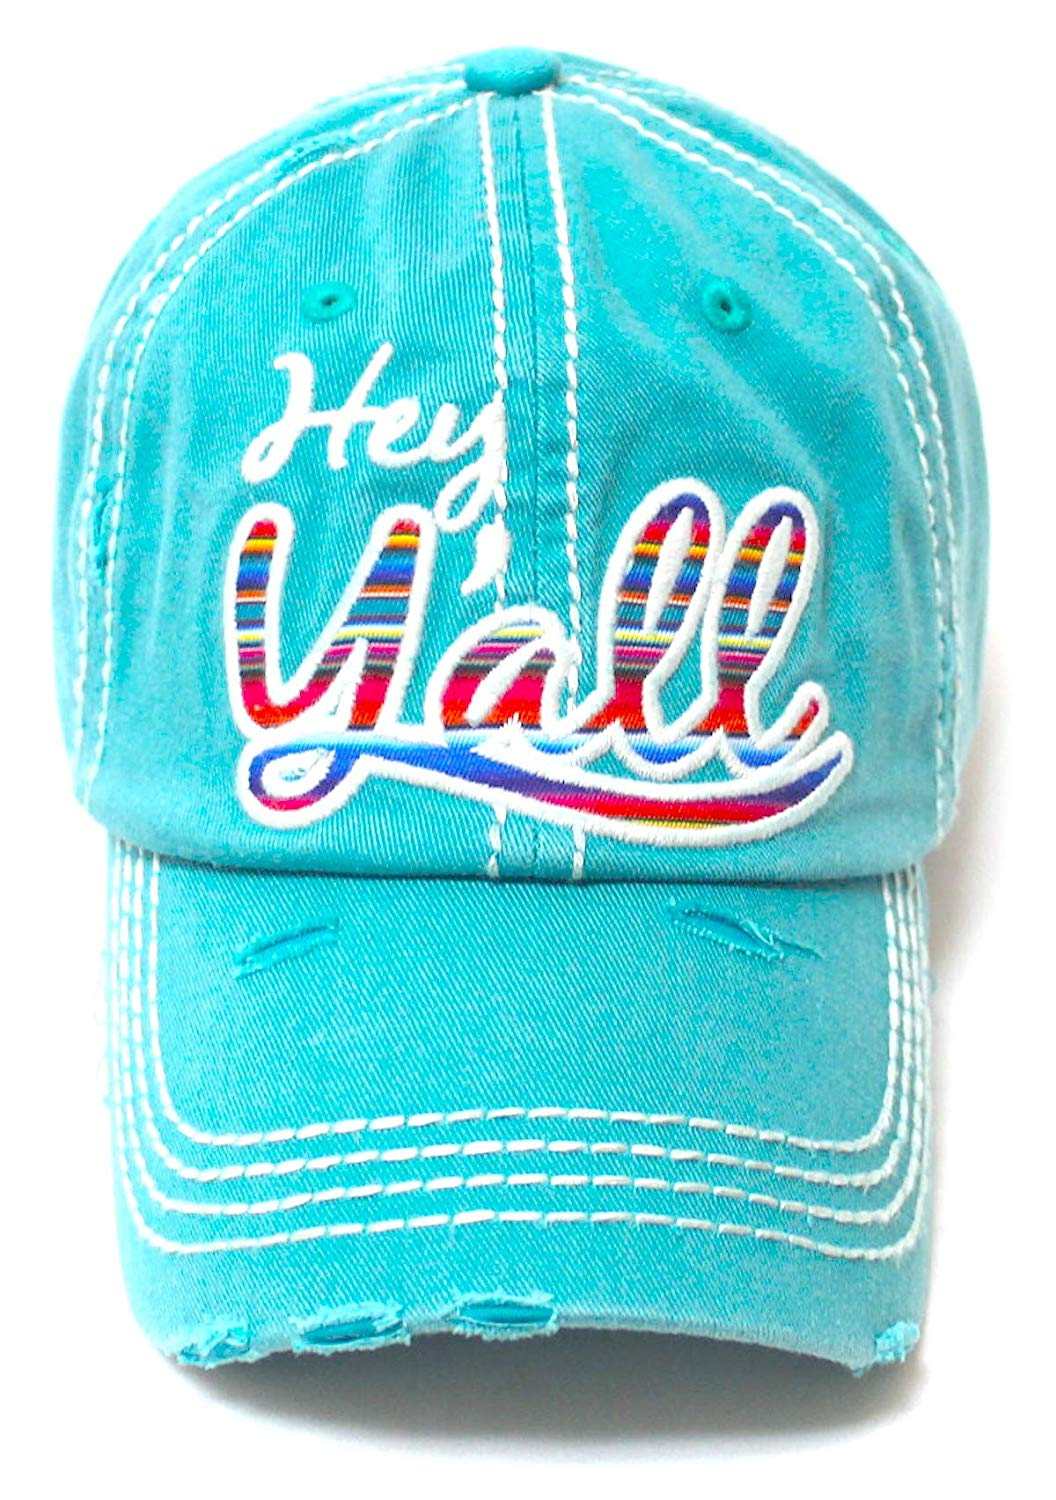 Hey Y'all Serape Monogram Embroidery Adjustable Hat, Vintage Turquoise - Caps 'N Vintage